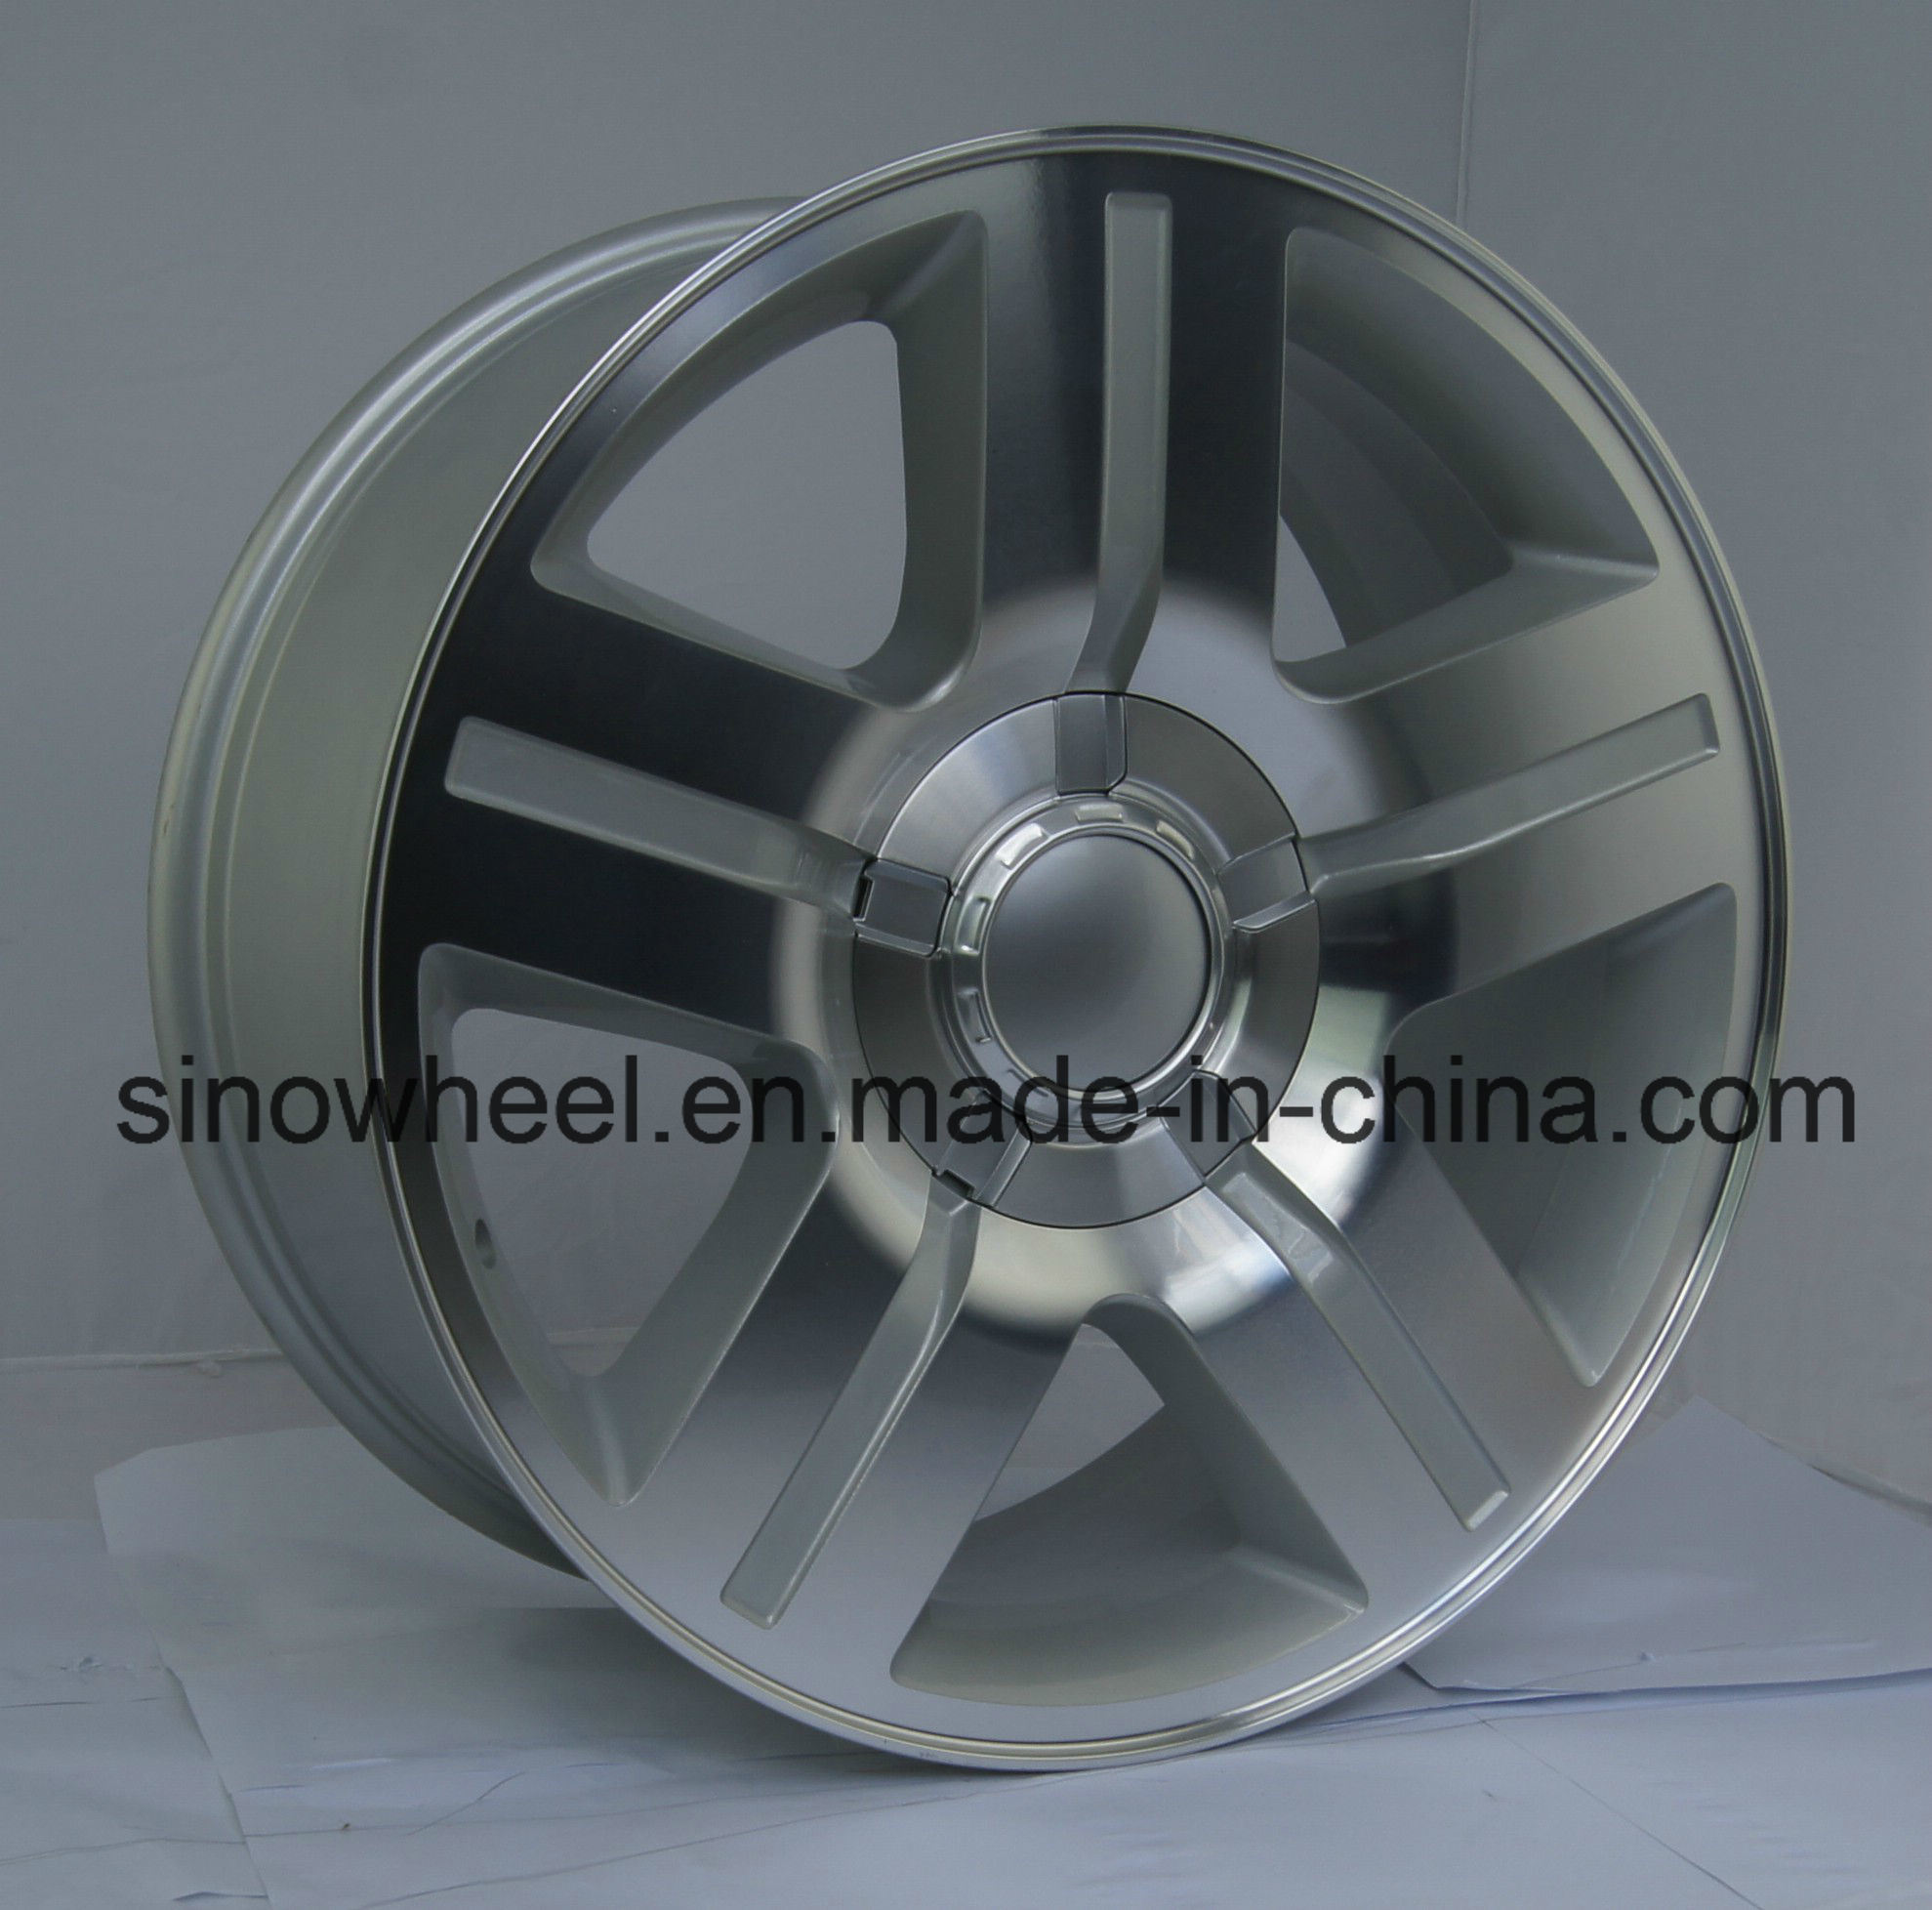 High Quality Replica Alloy Wheel for Chevrolet Silverado Replica Alloy Wheel 22X9.0